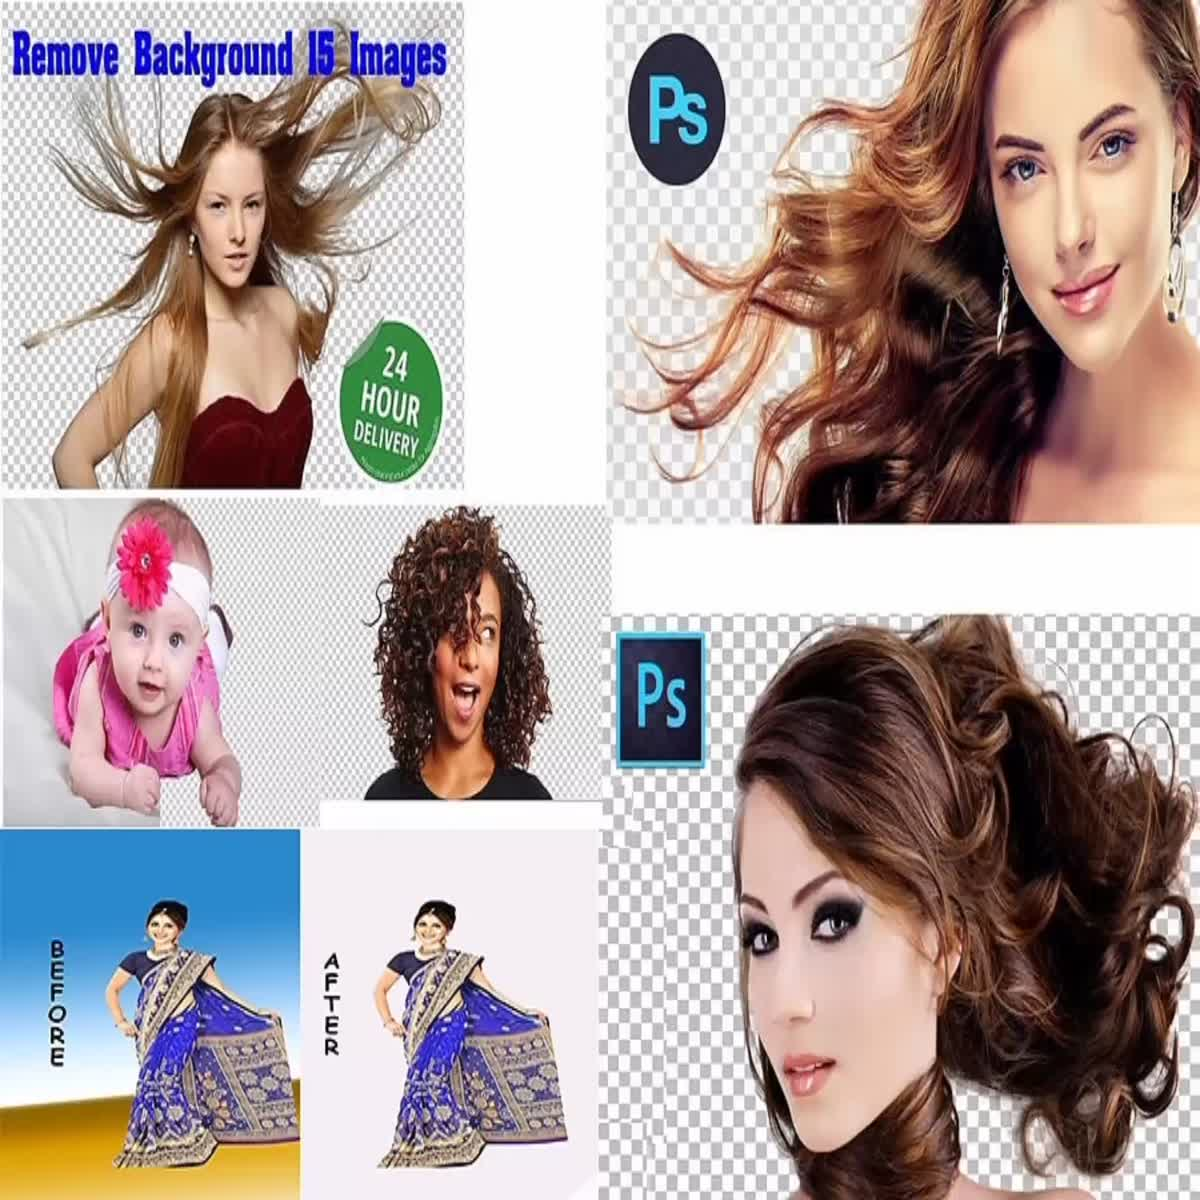 I will do photoshop edits, background remove, retouching, clipping path within 12 hours